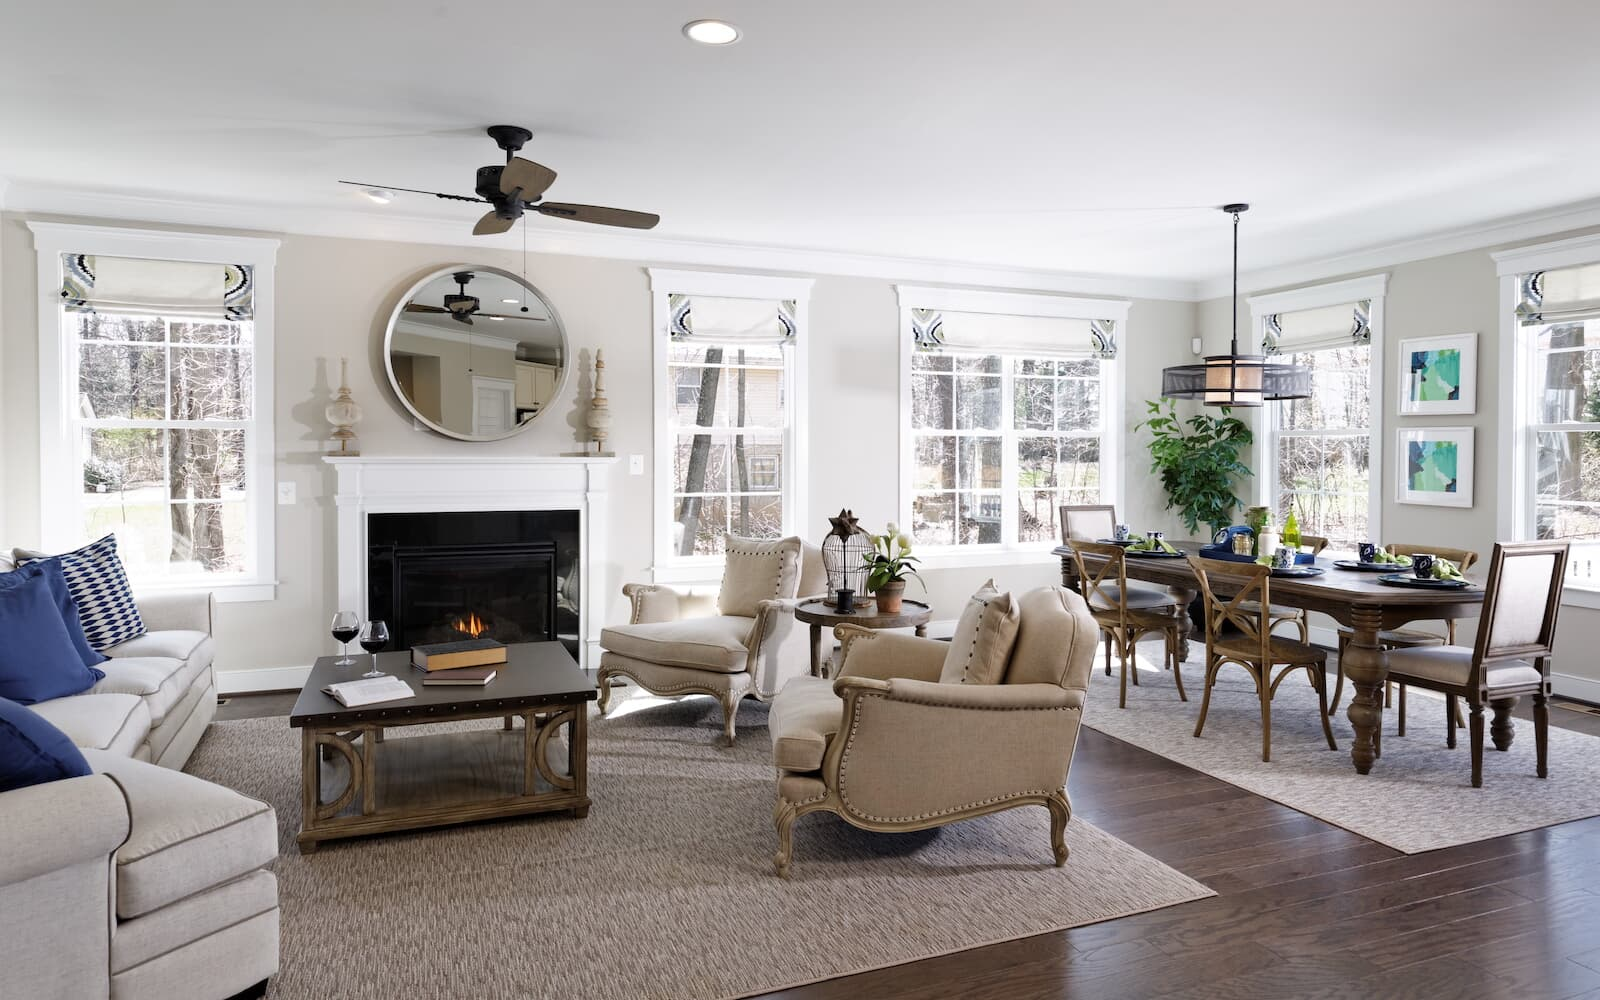 BecknerII-living-room-single-family-home-potomac-shores-va-potomac-shores-brookfield-residential